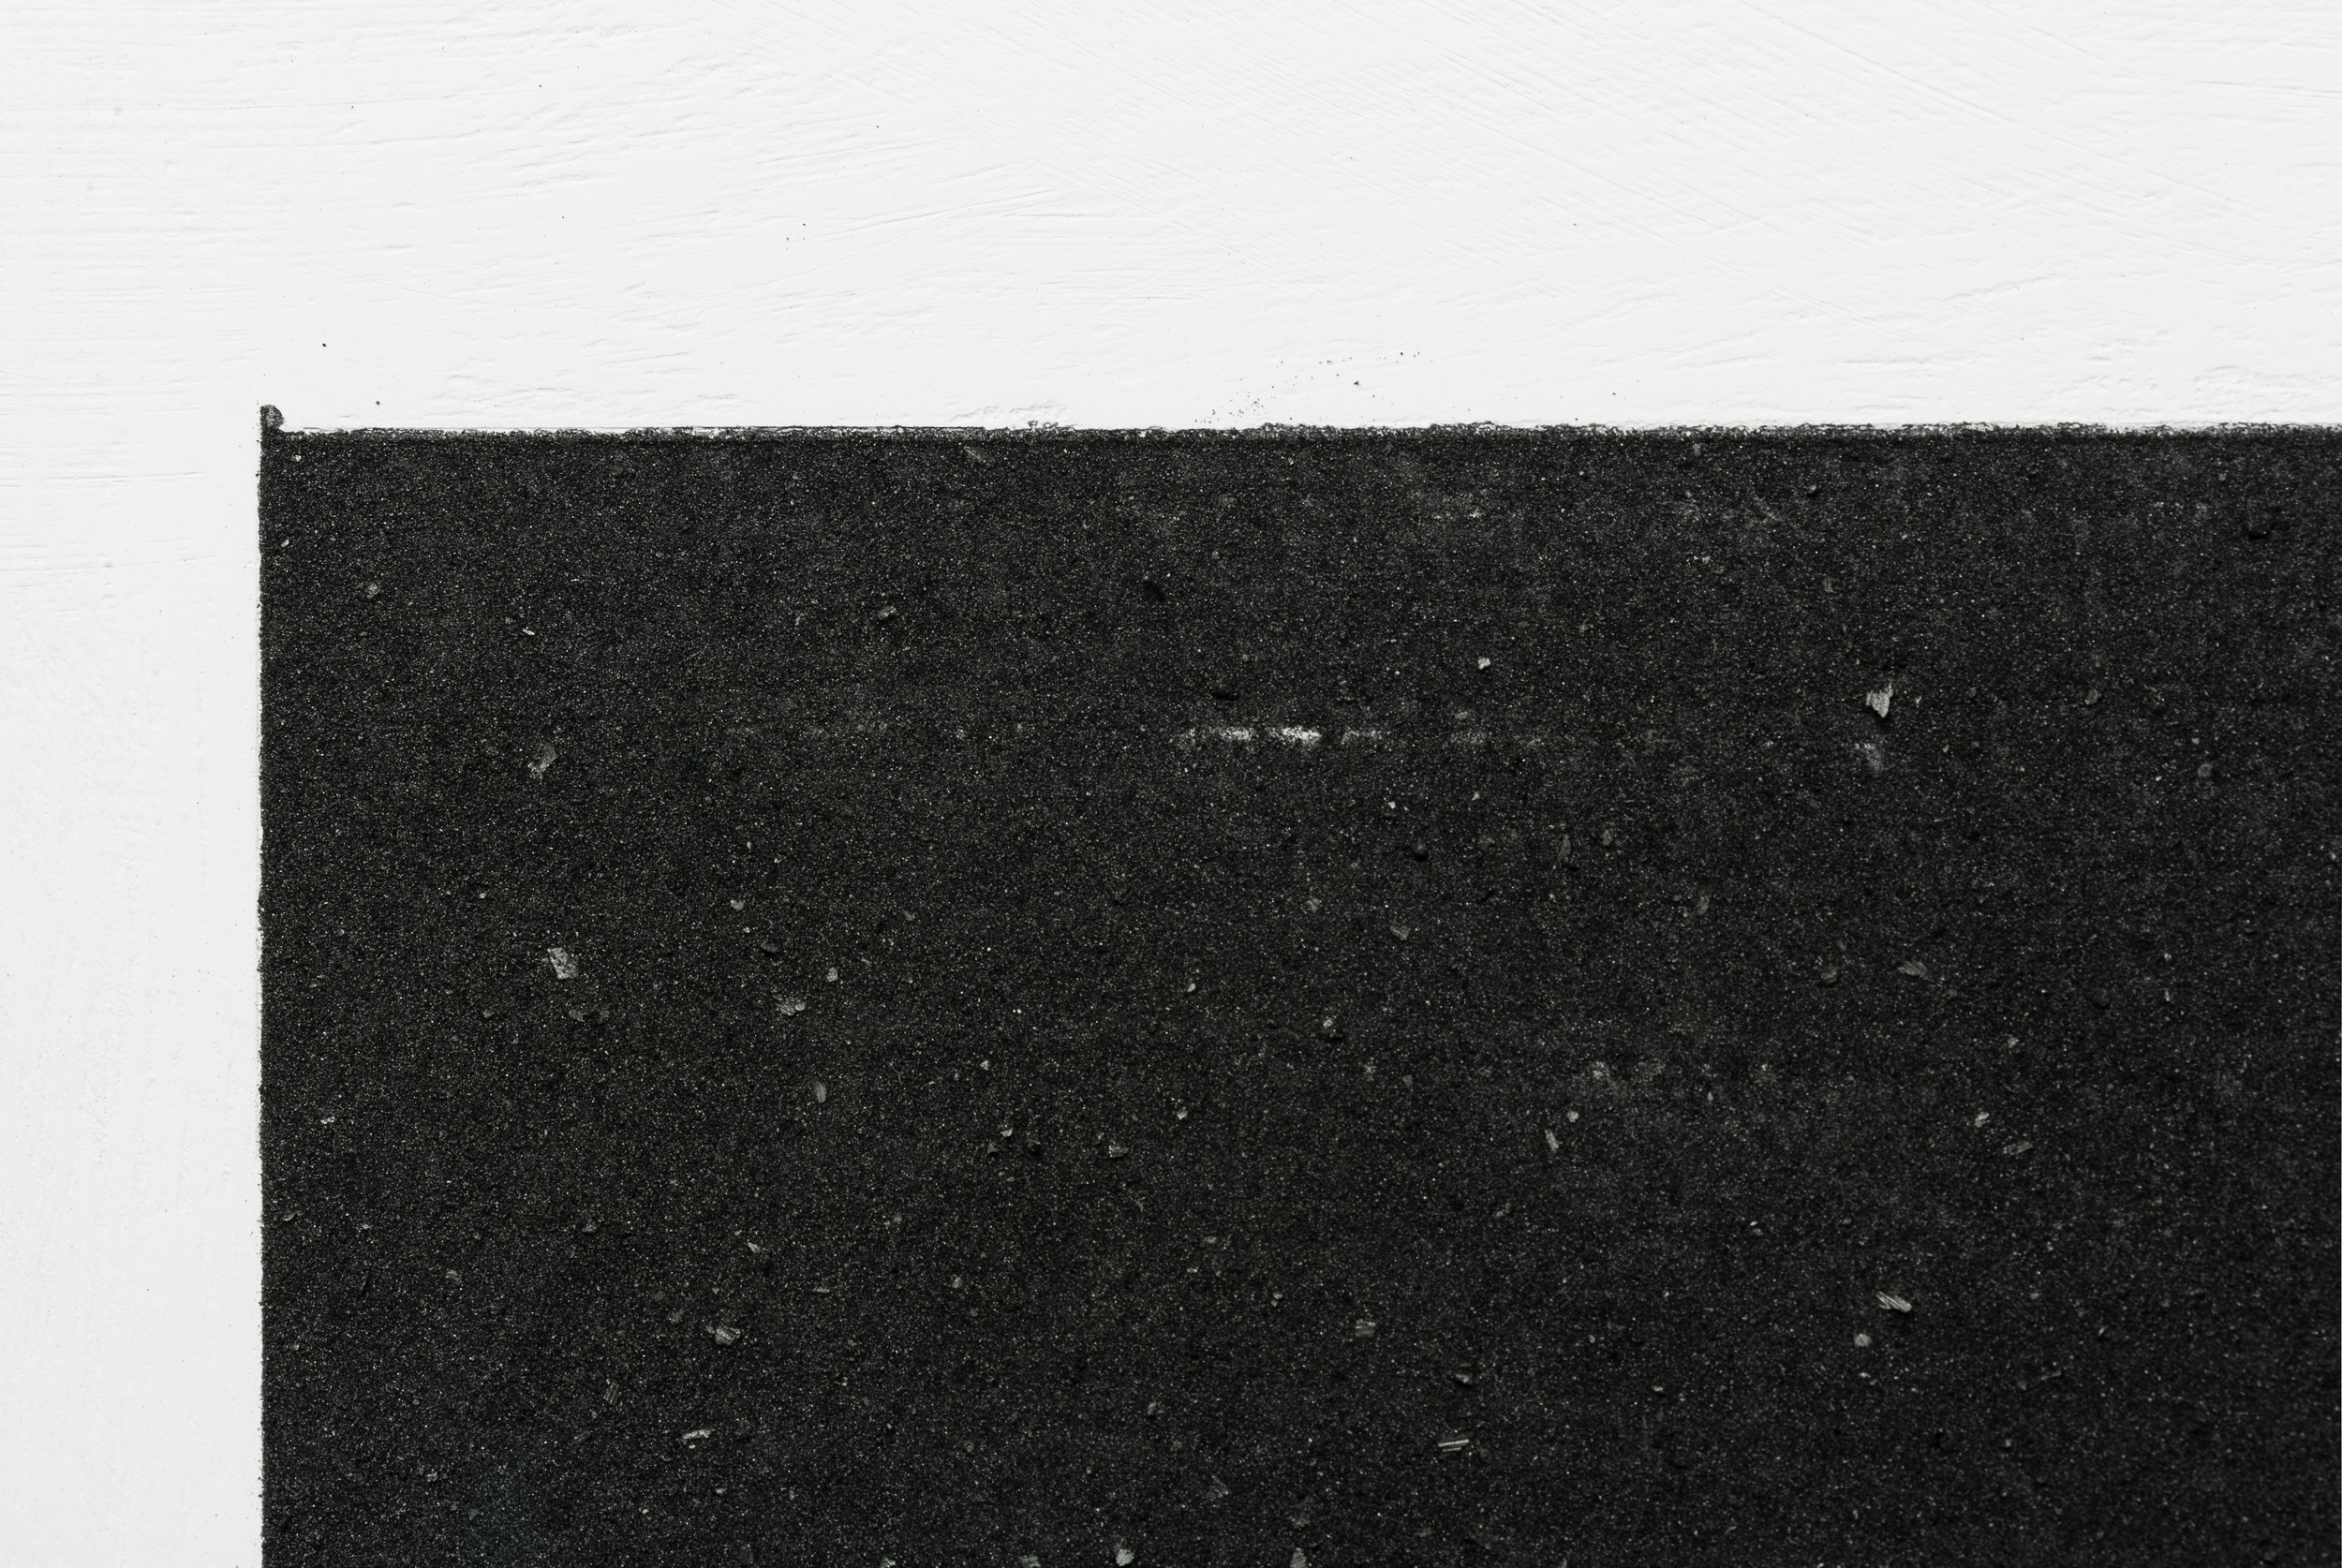 graphite field edge detail